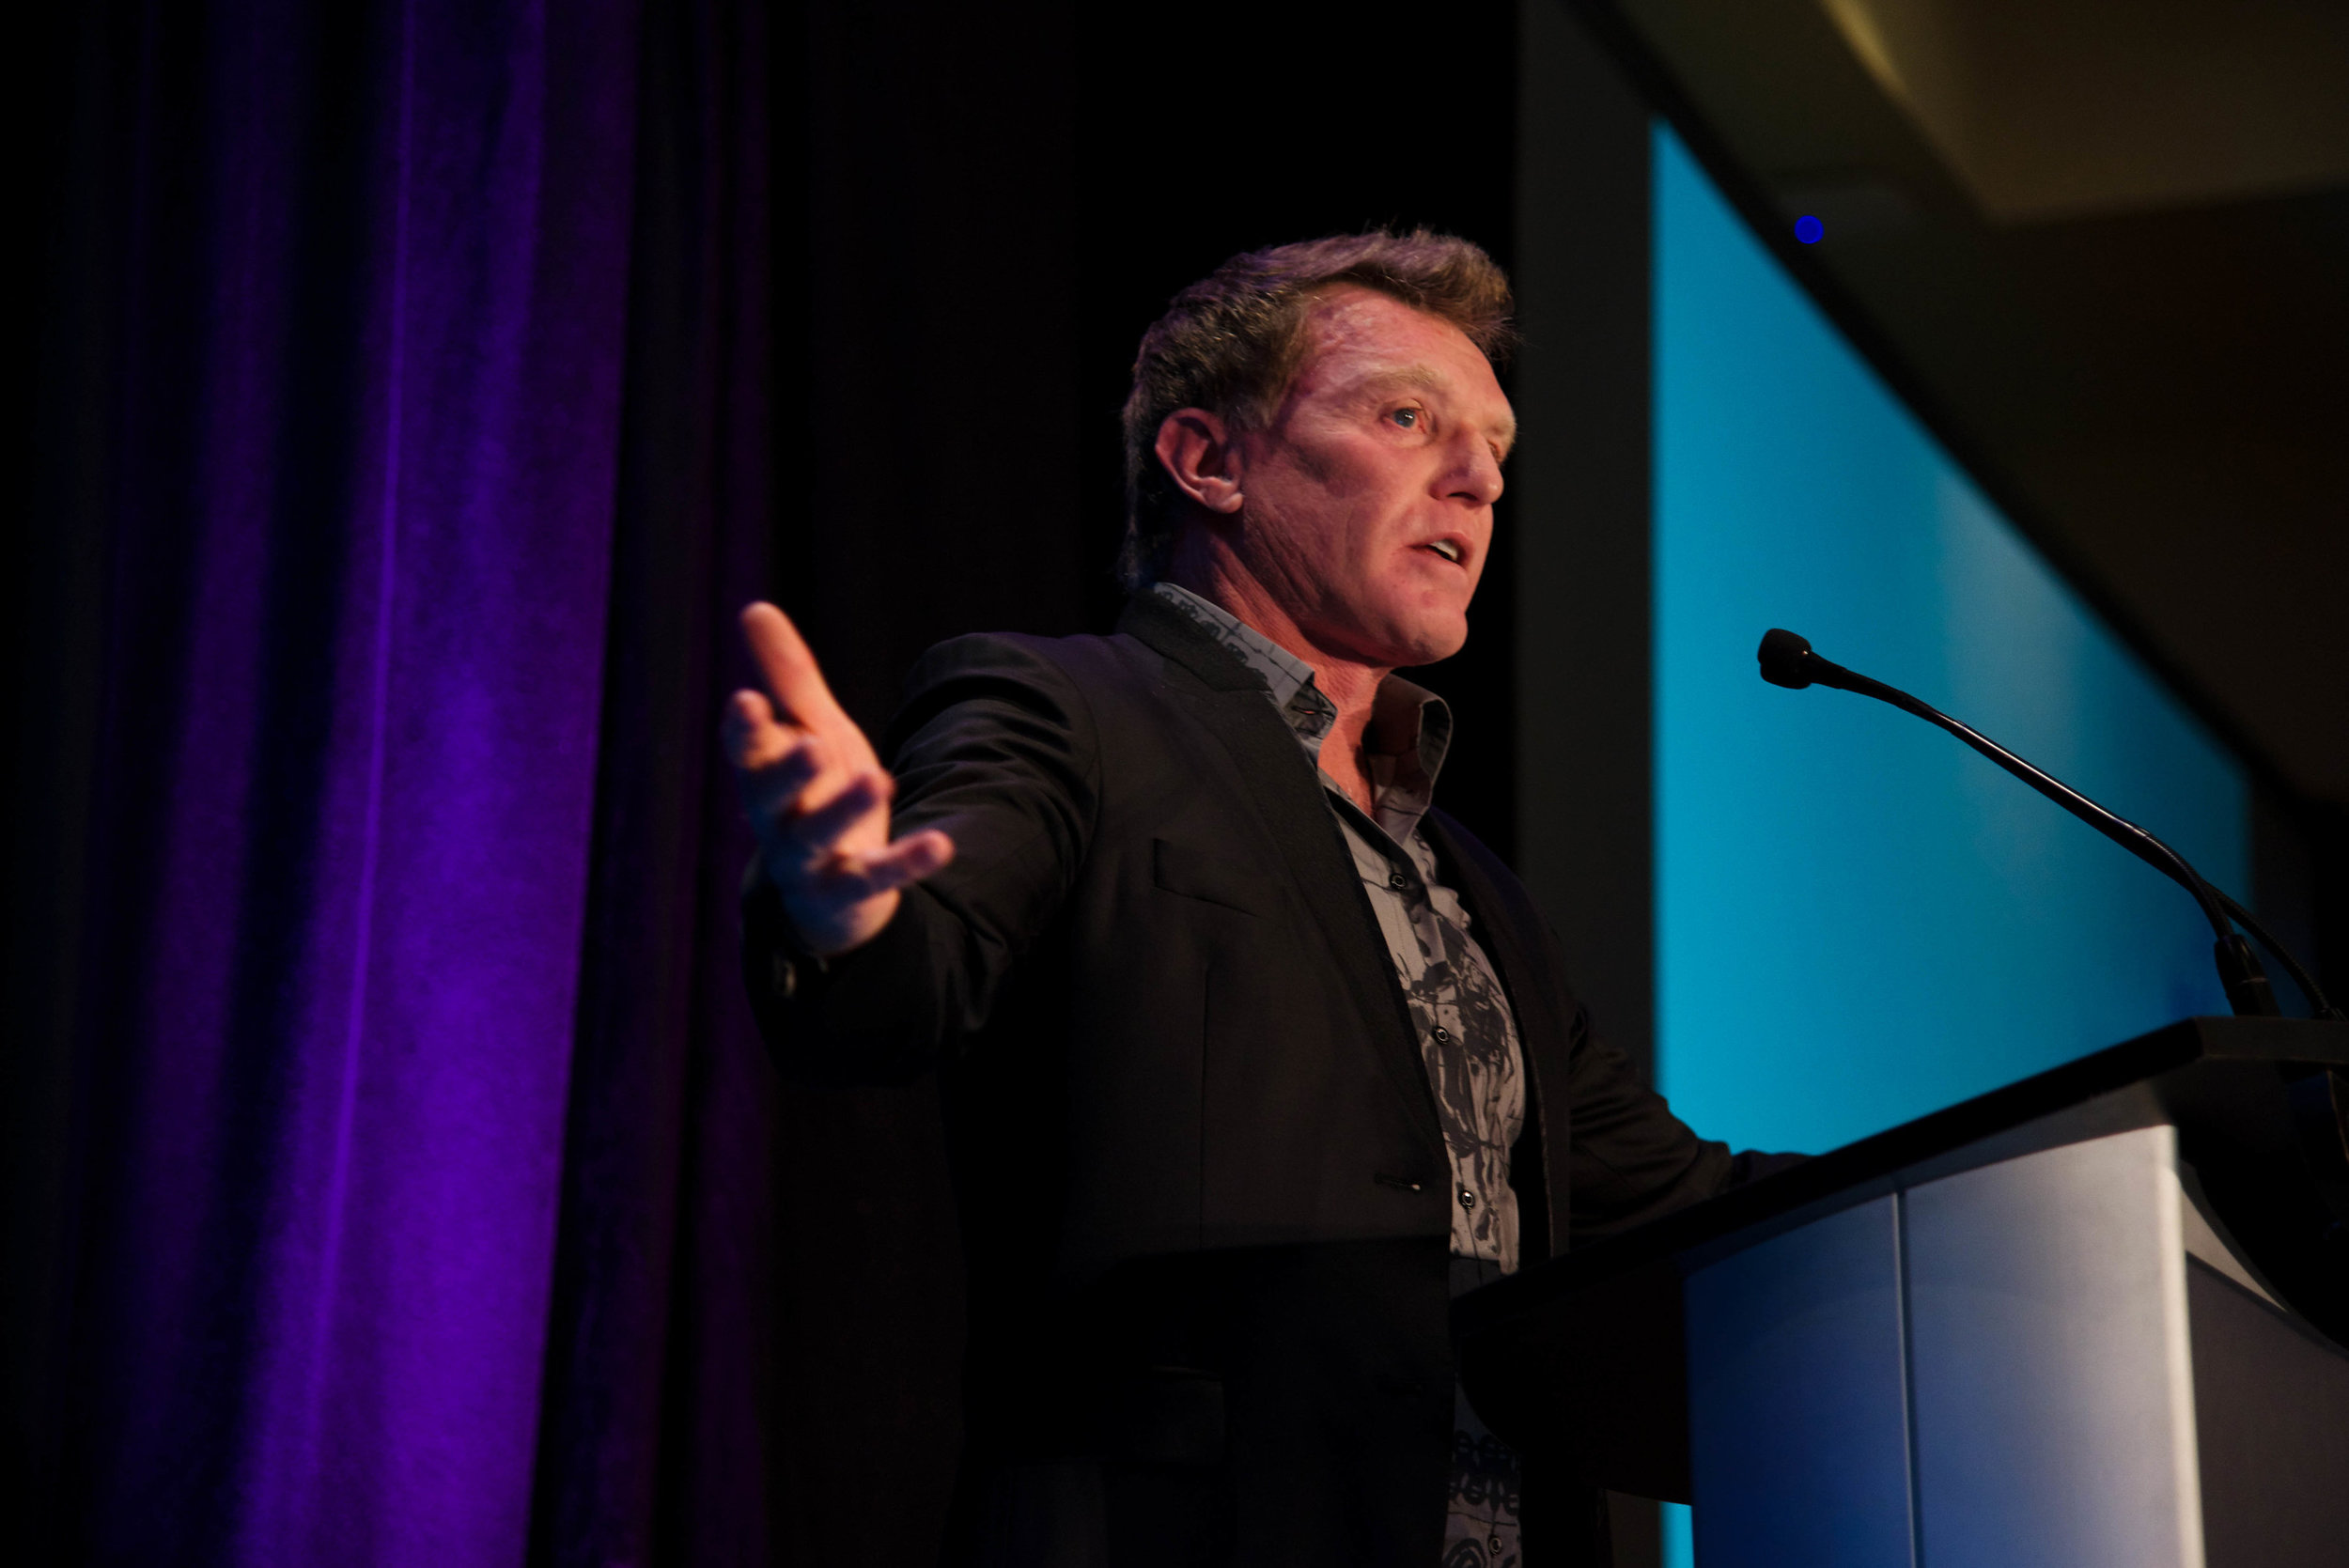 Tom has become a passionate advocate for his favourite charities – spending much of his time promoting awareness surrounding mental and emotional health issues and suicide prevention initiatives. (Photo provided by BC Cancer Foundation – Discovery Lunch)